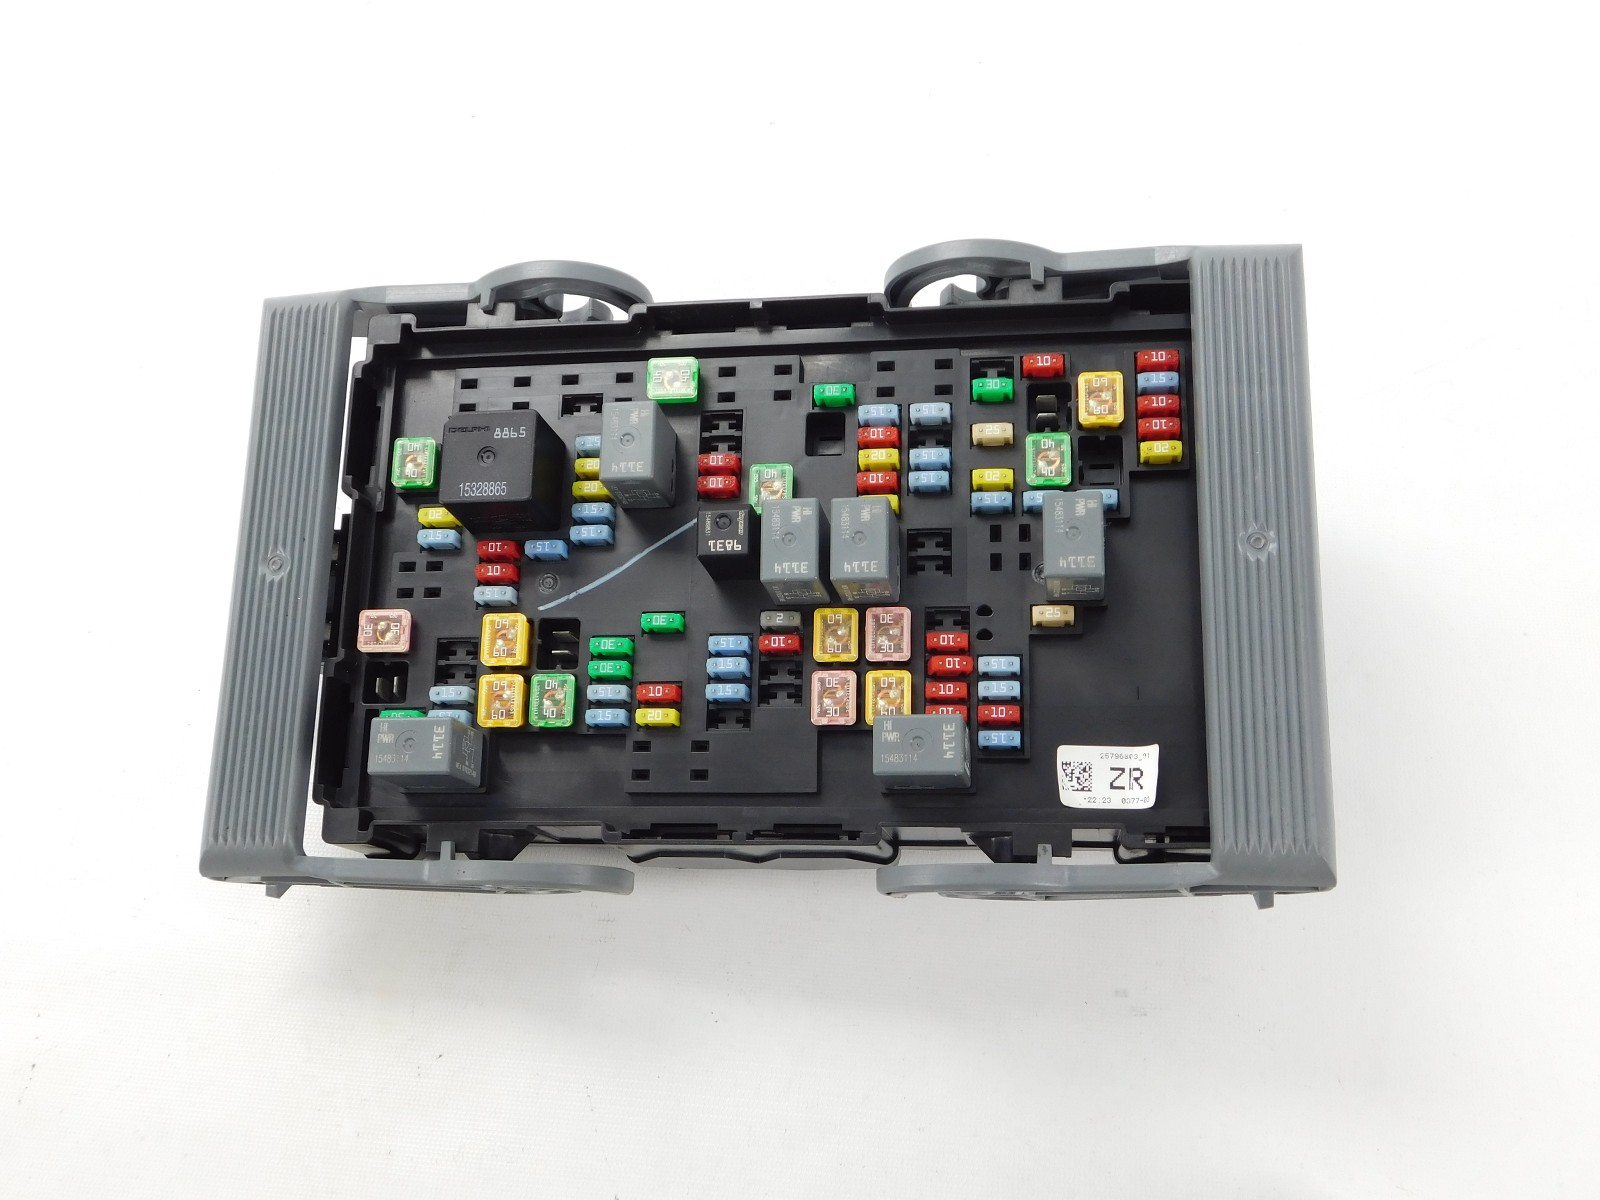 TH2TpC  Gmc Sierra Fuse Box Location on 2500hd slt, crew cab 4x4, body parts for, 1500 hd classic, motor supports,